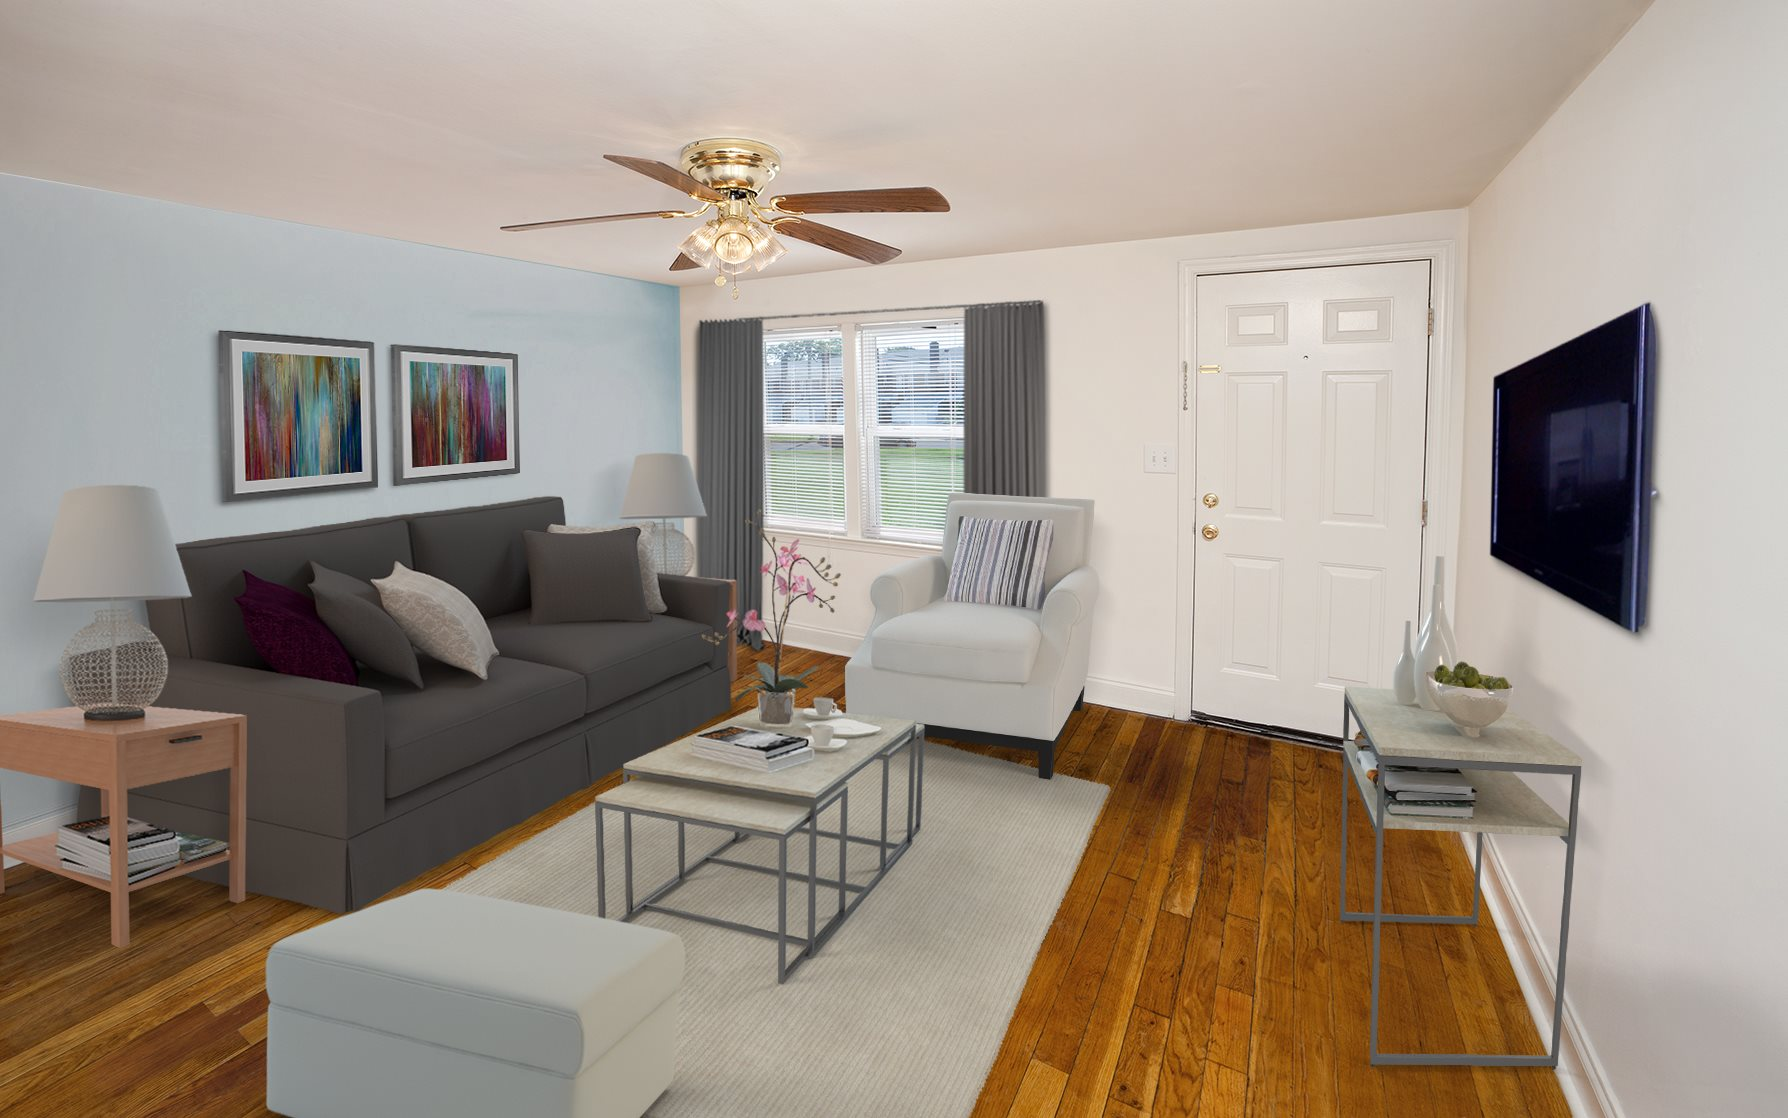 Spacious Living Rooms at Day Village Townhomes, Dundalk, MD,21222